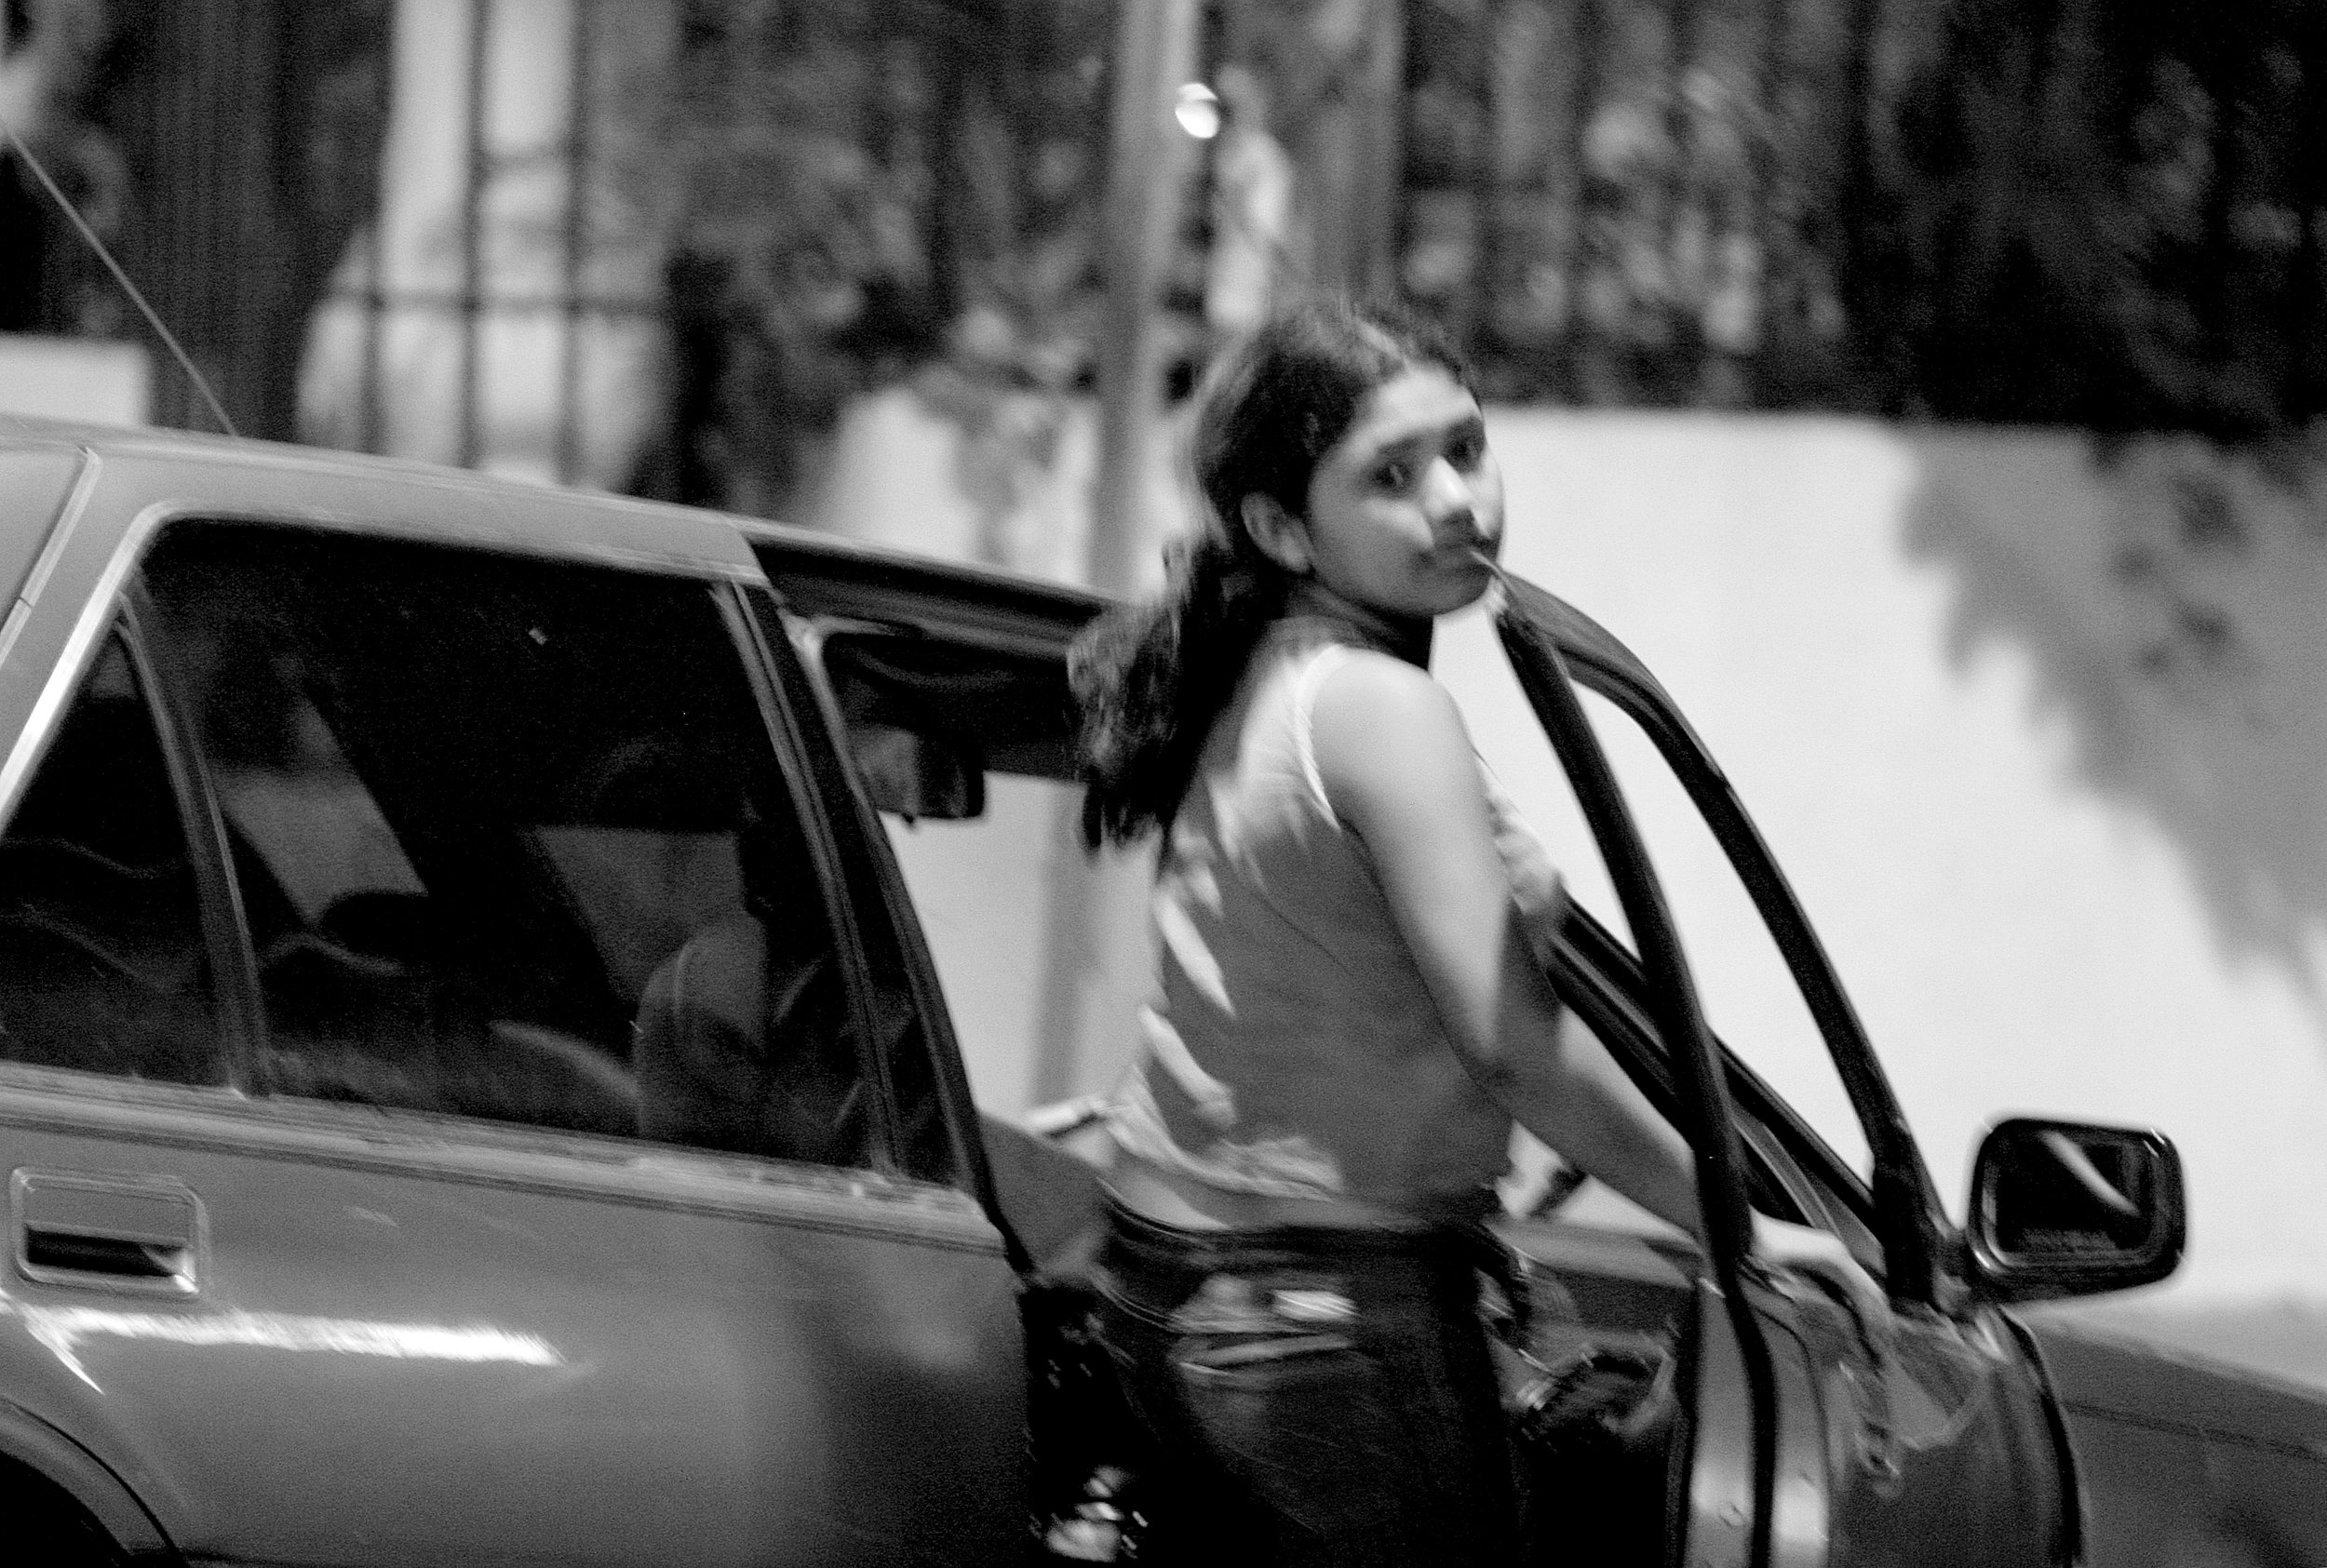 Rozievel gets into a customers car in downtown Managua.